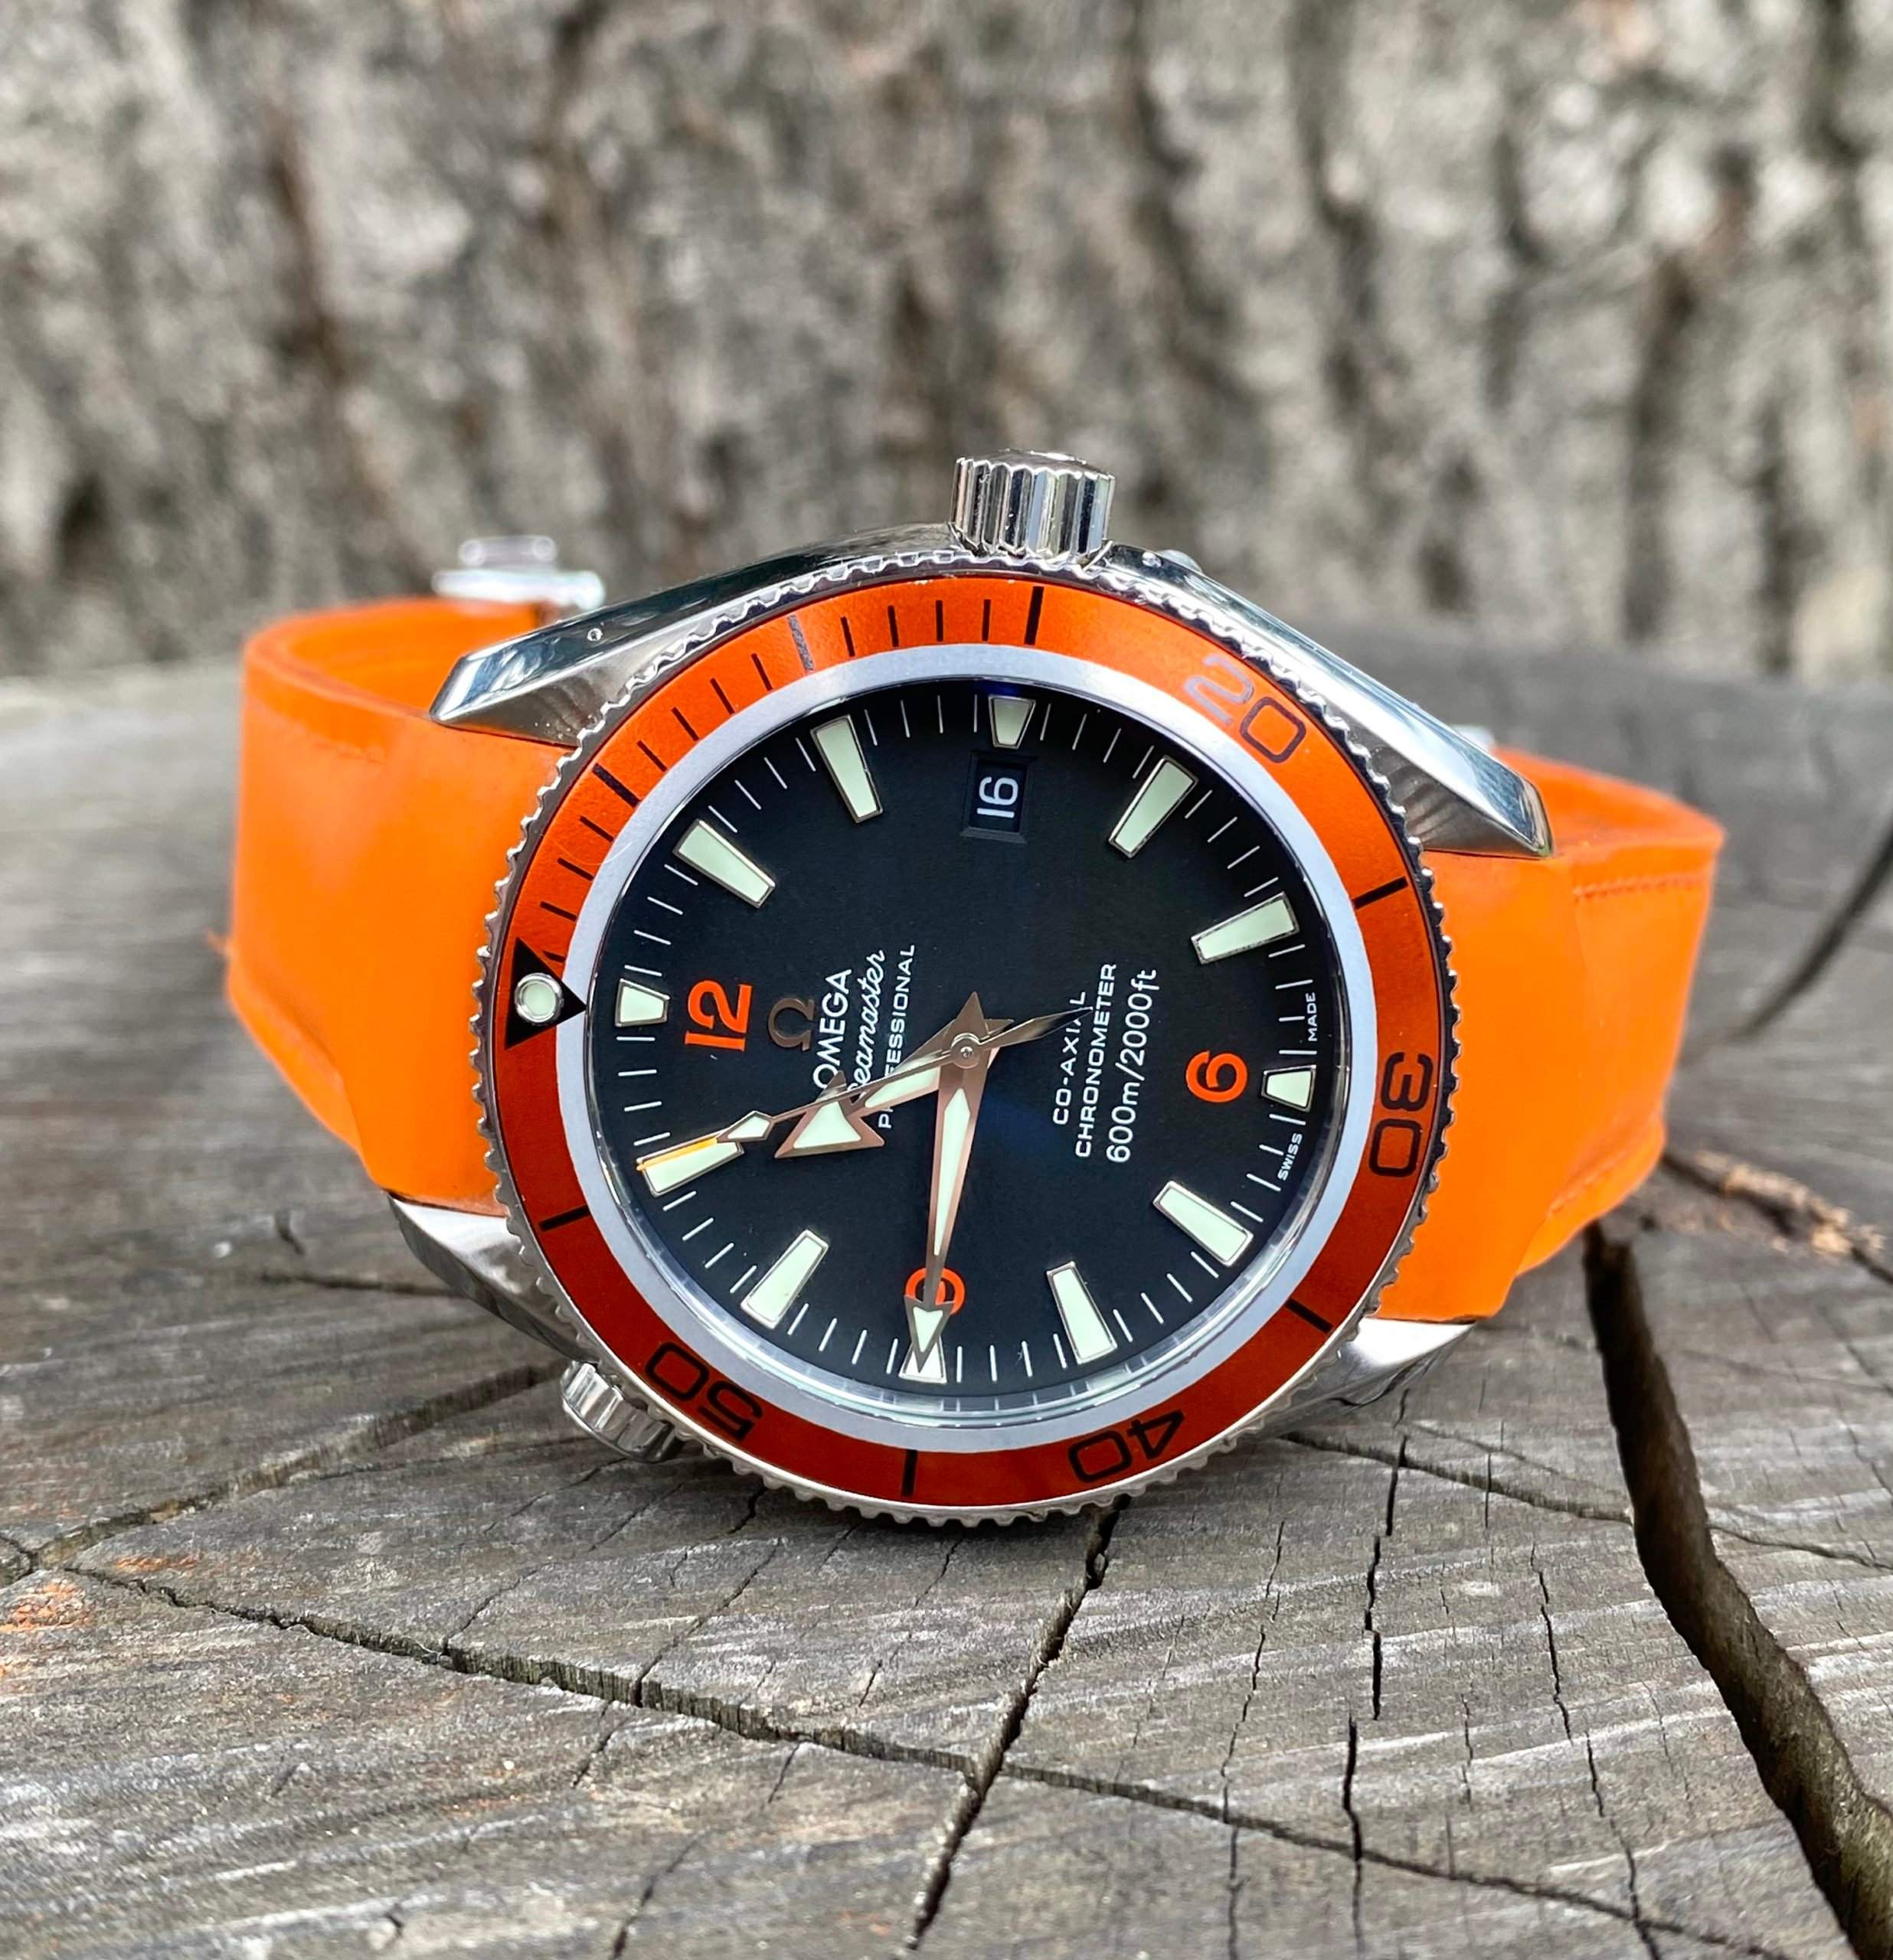 Well-made diving watches like the Omega Seamaster almost always meet ISO 6425 standards.